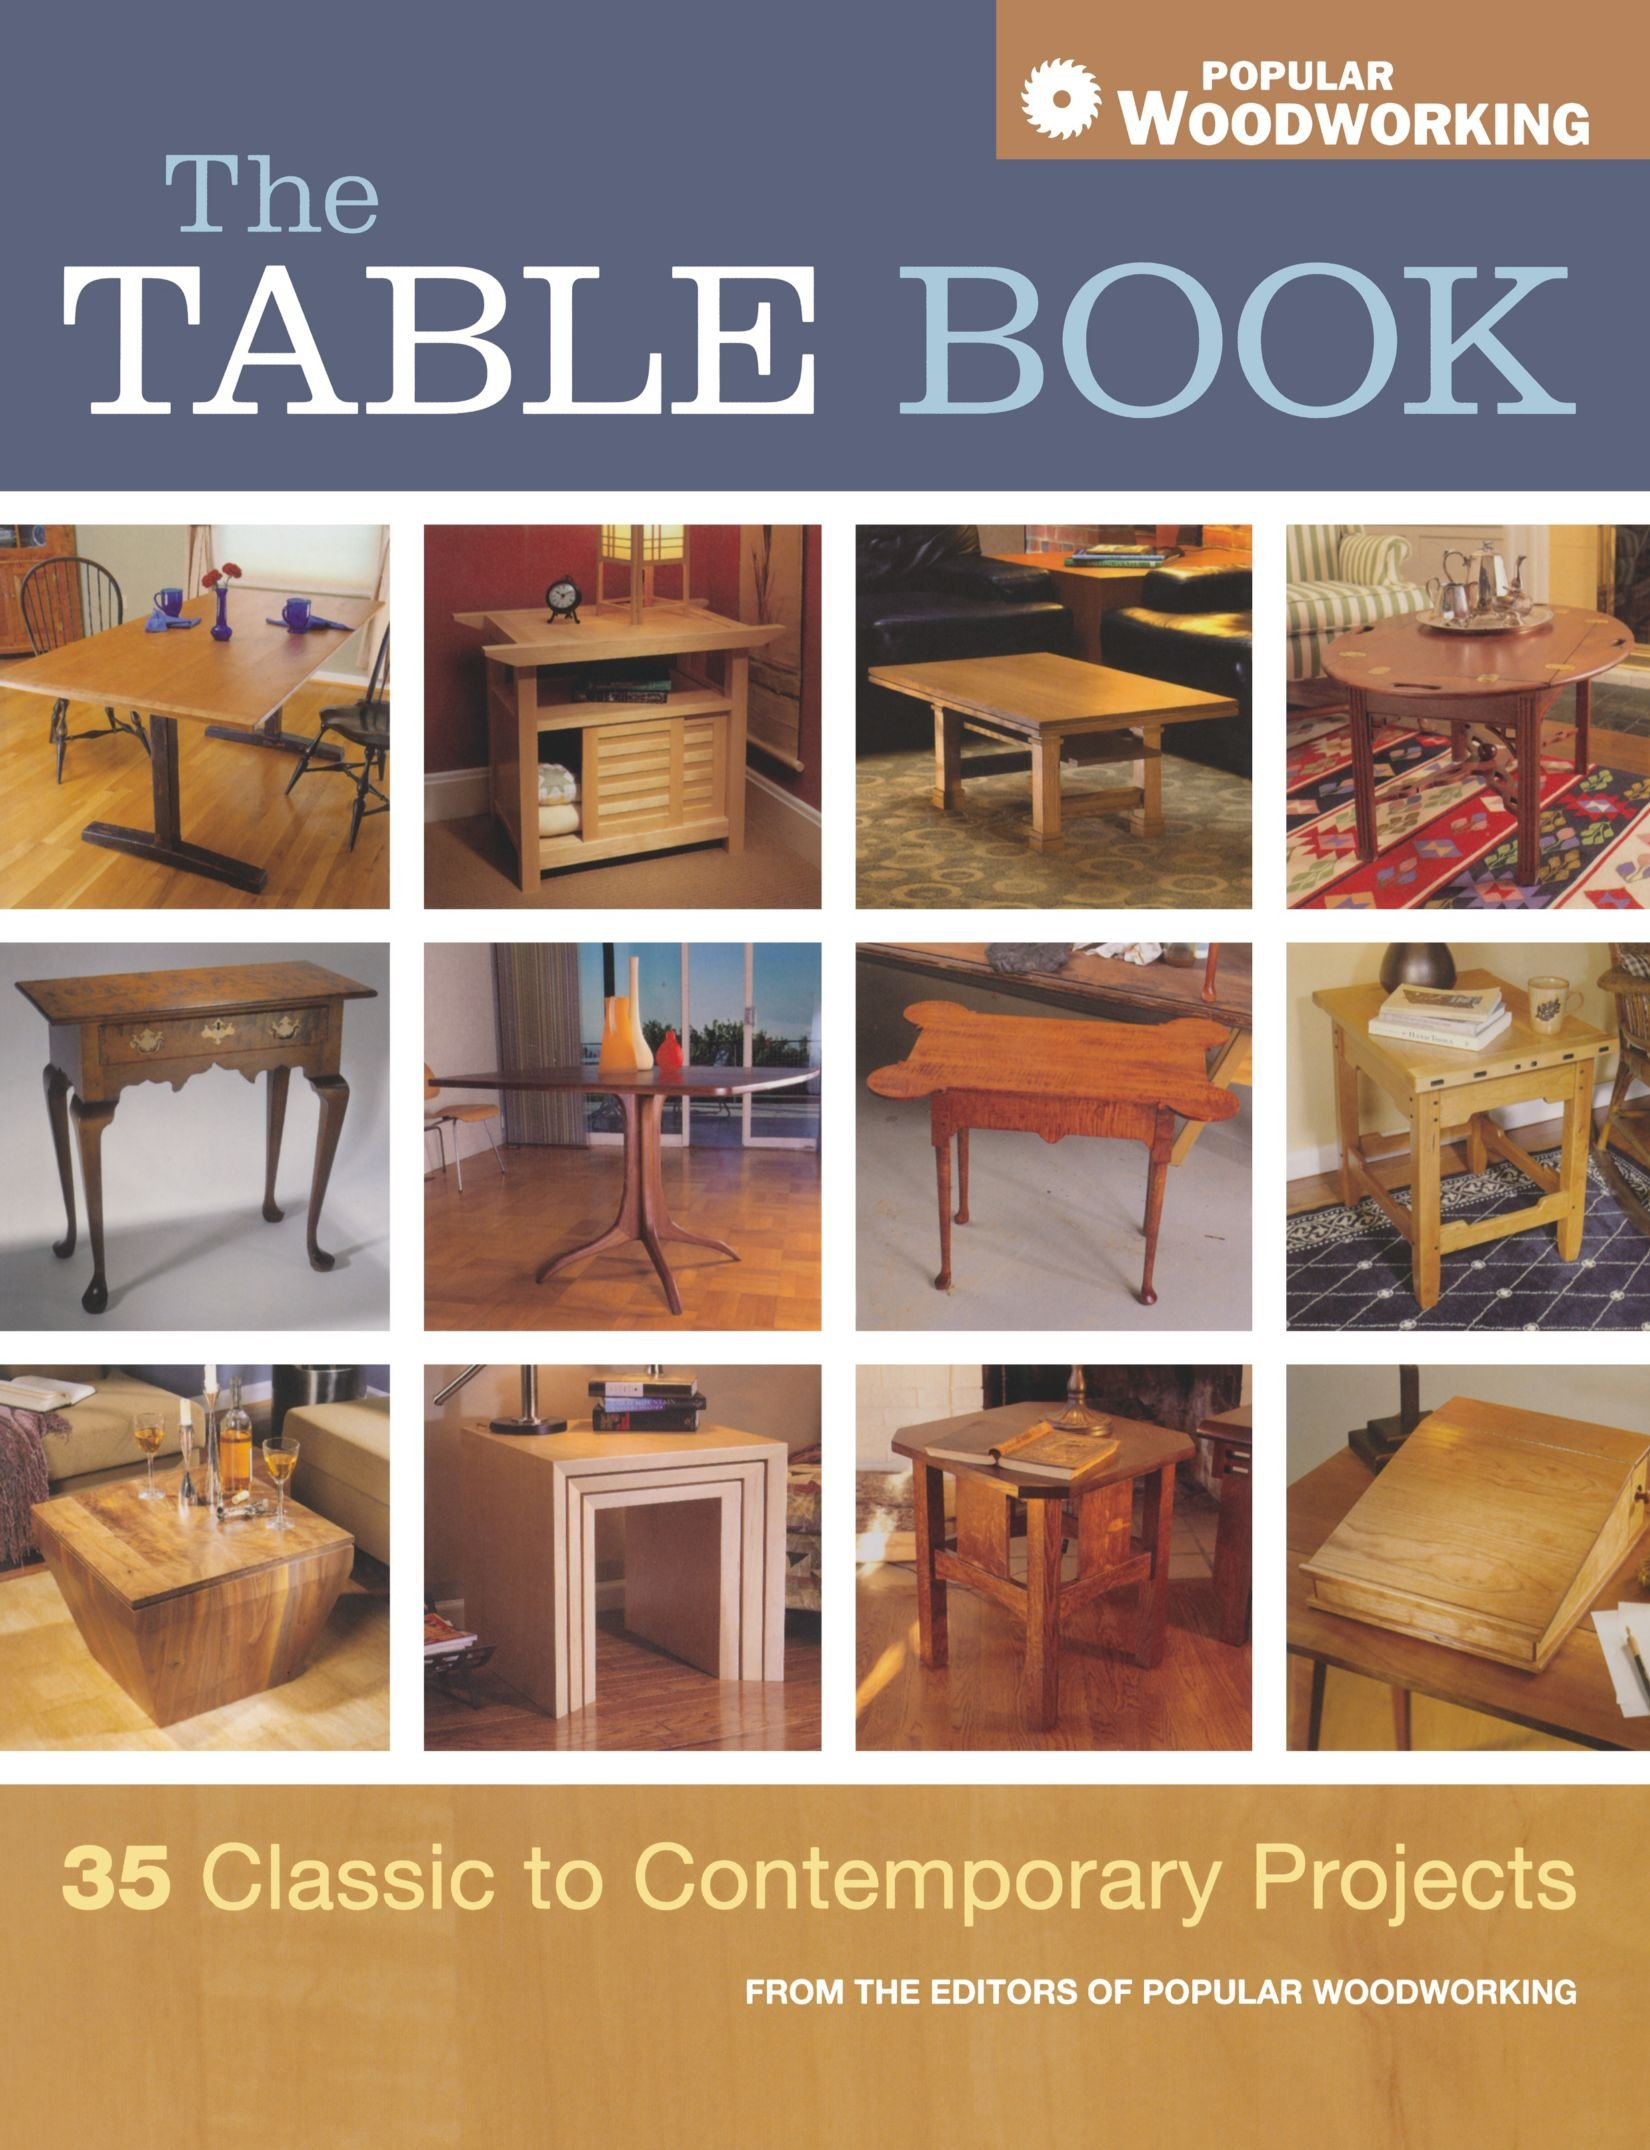 The Table Book: 35 Classic to Contemporary Projects - Editors of Popular Woodworking - Google книги